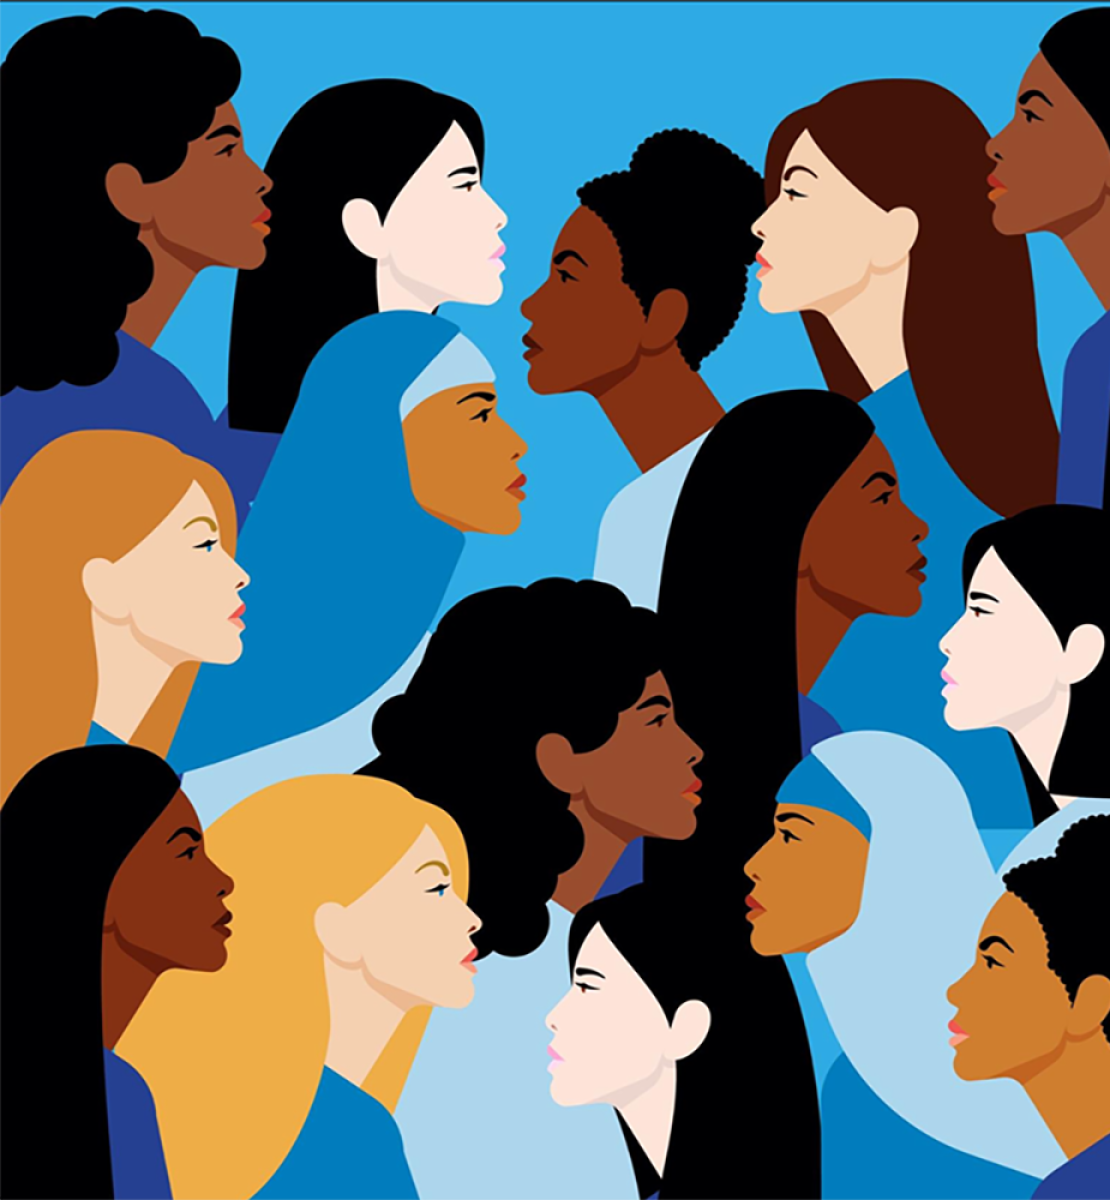 Graphic shows animated women of all races and background facing each other against a solid blue background.